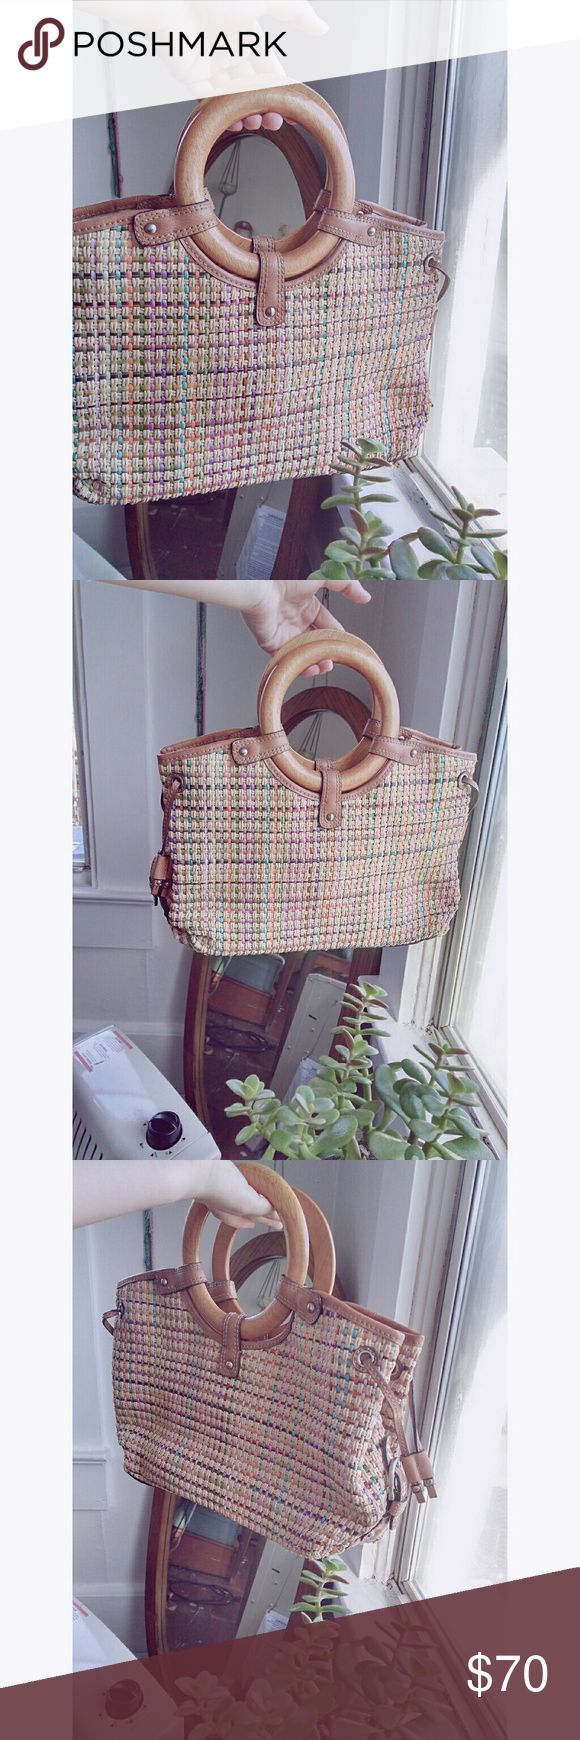 70s Woven Straw Fossil Handbag Super pretty and unique vintage Fossil handbag with a woven rainbow straw exterior, light brown leather, and wooden handles. Exterior is in GREAT condition, only a few spots on the interior. I absolutely love the look of woven straw bags, and this one is really unique and eclectic. The wooden handles are also super cool. 💛✌ Fossil Bags Totes